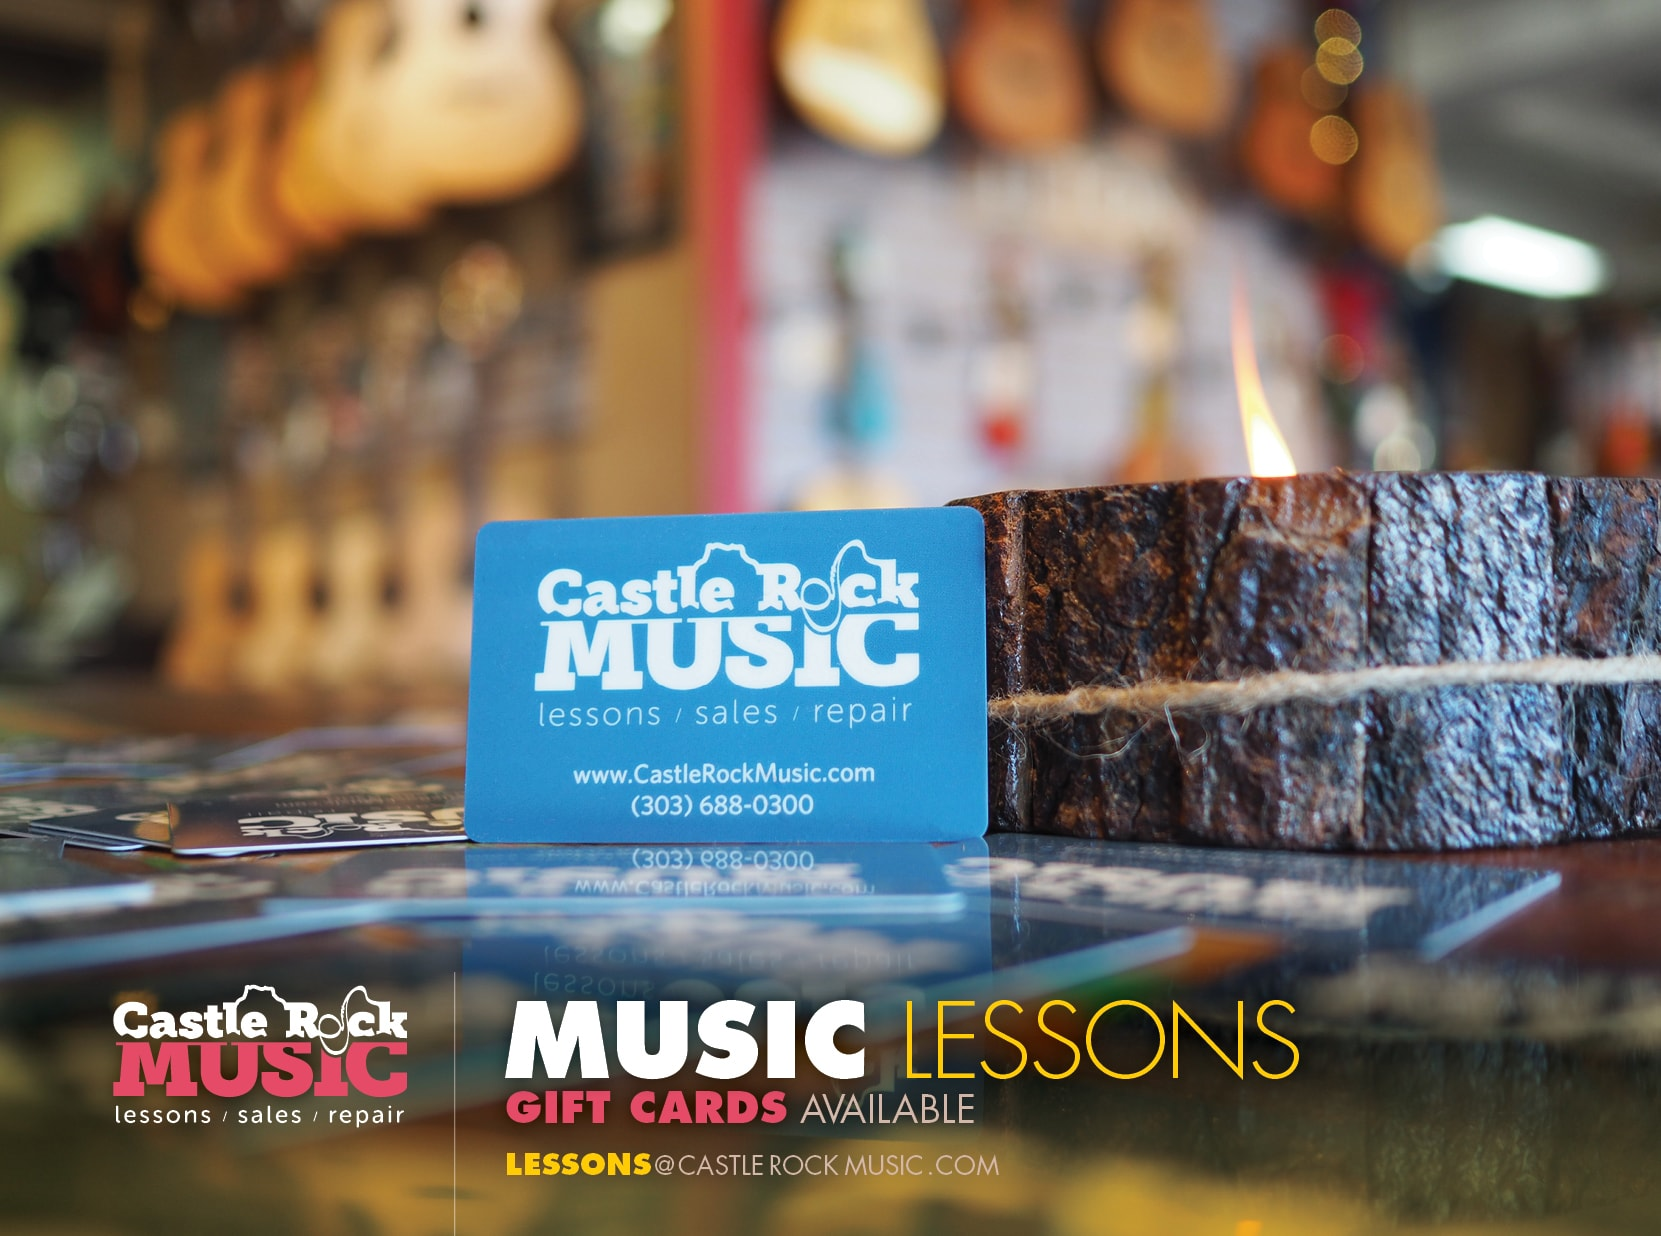 Gift Cards for Music Lessons at Castle Rock Music -- Email us at lessons@castlerockmusic.com